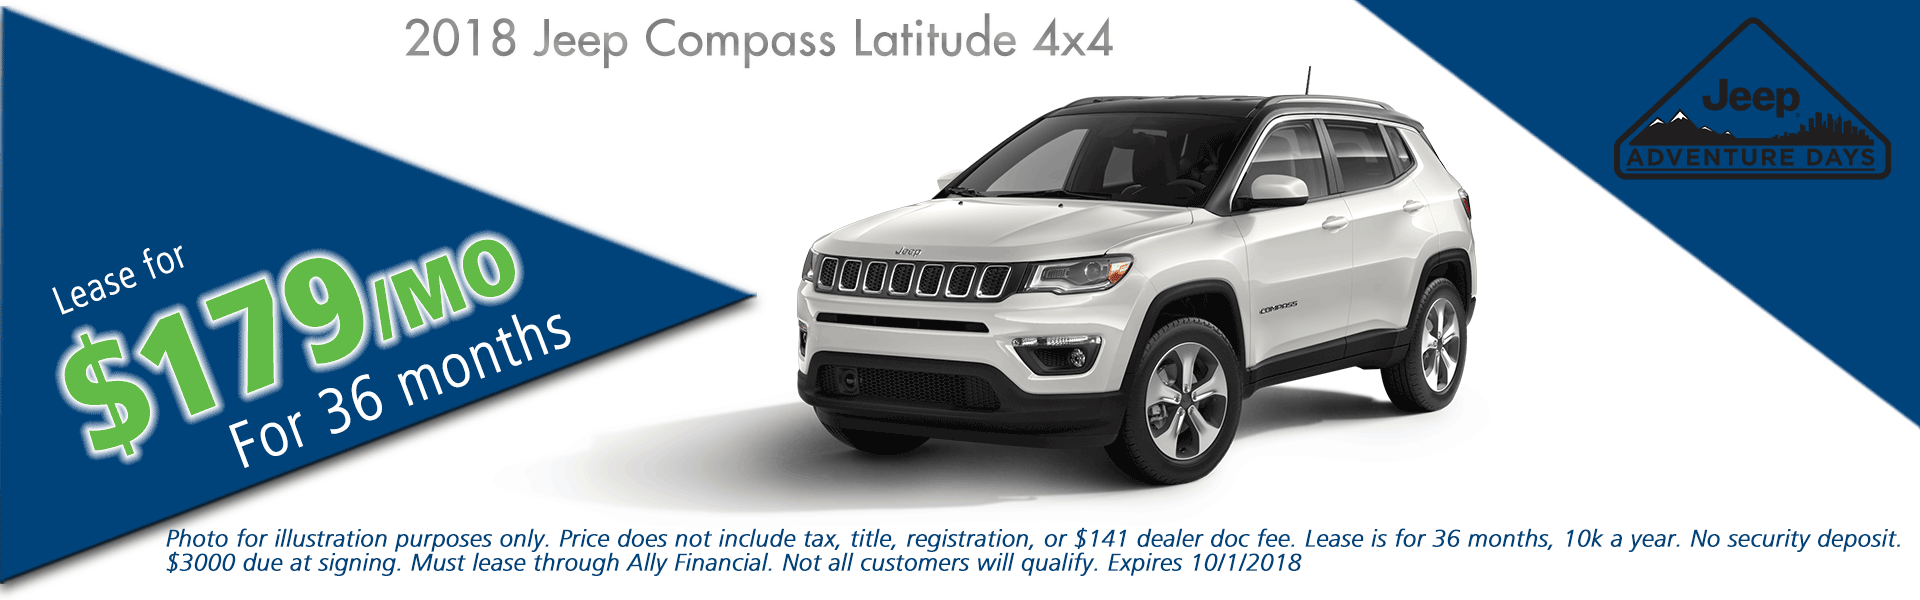 CarRight Chrysler Jeep Dodge Ram, Moon Township, PA Sales Service Body Shop Parts NEW 2018 JEEP COMPASS LATITUDE 4X4